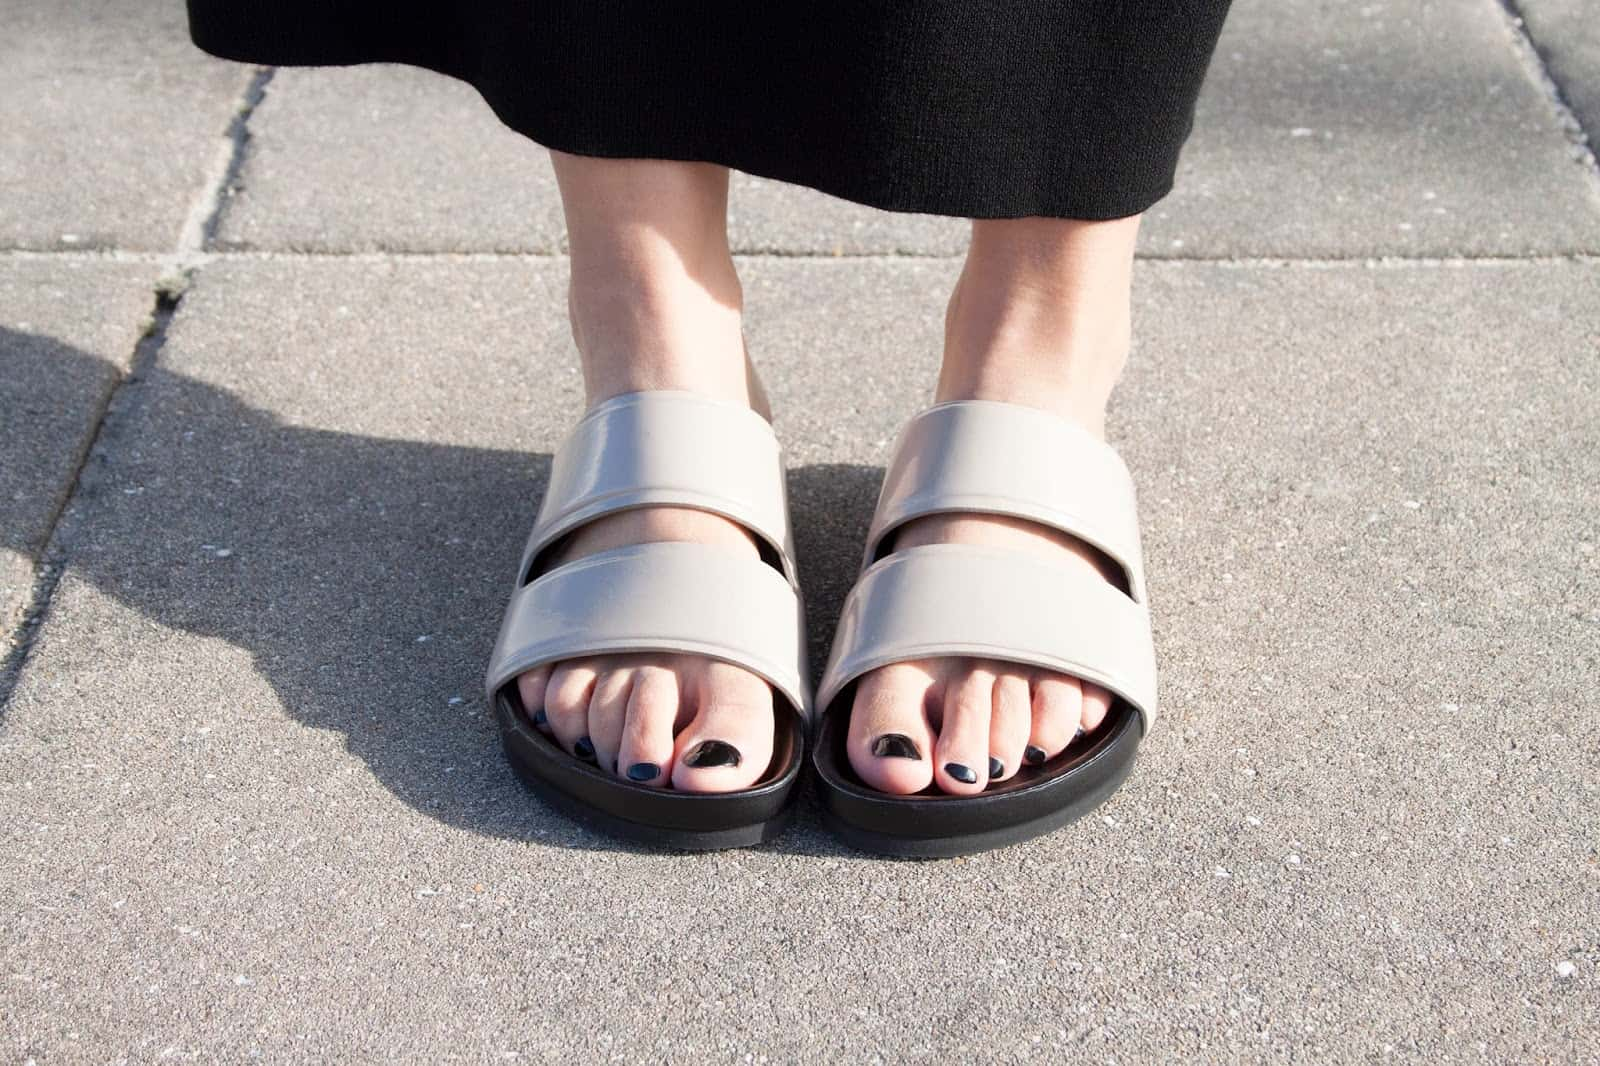 Slide Sandals The Biggest Shoe Trend This Summer